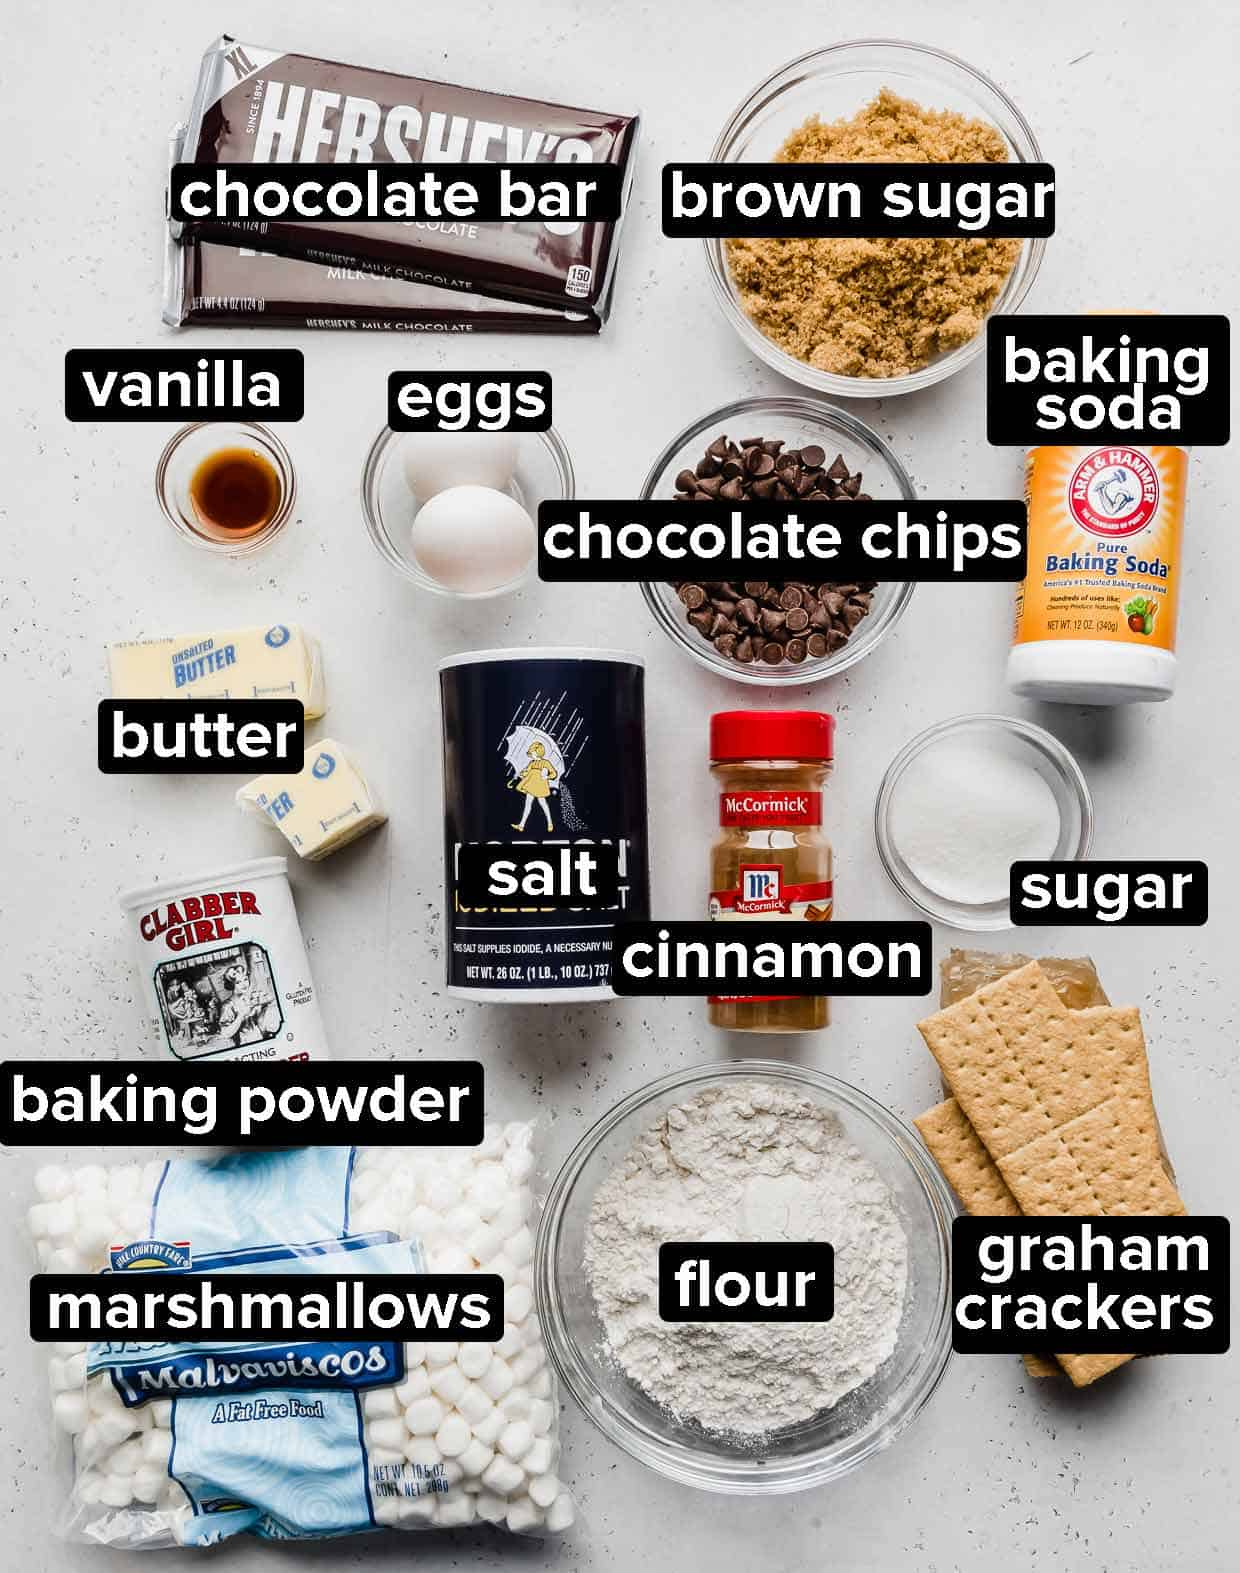 Ingredients used to make S'mores cookies on a white background.